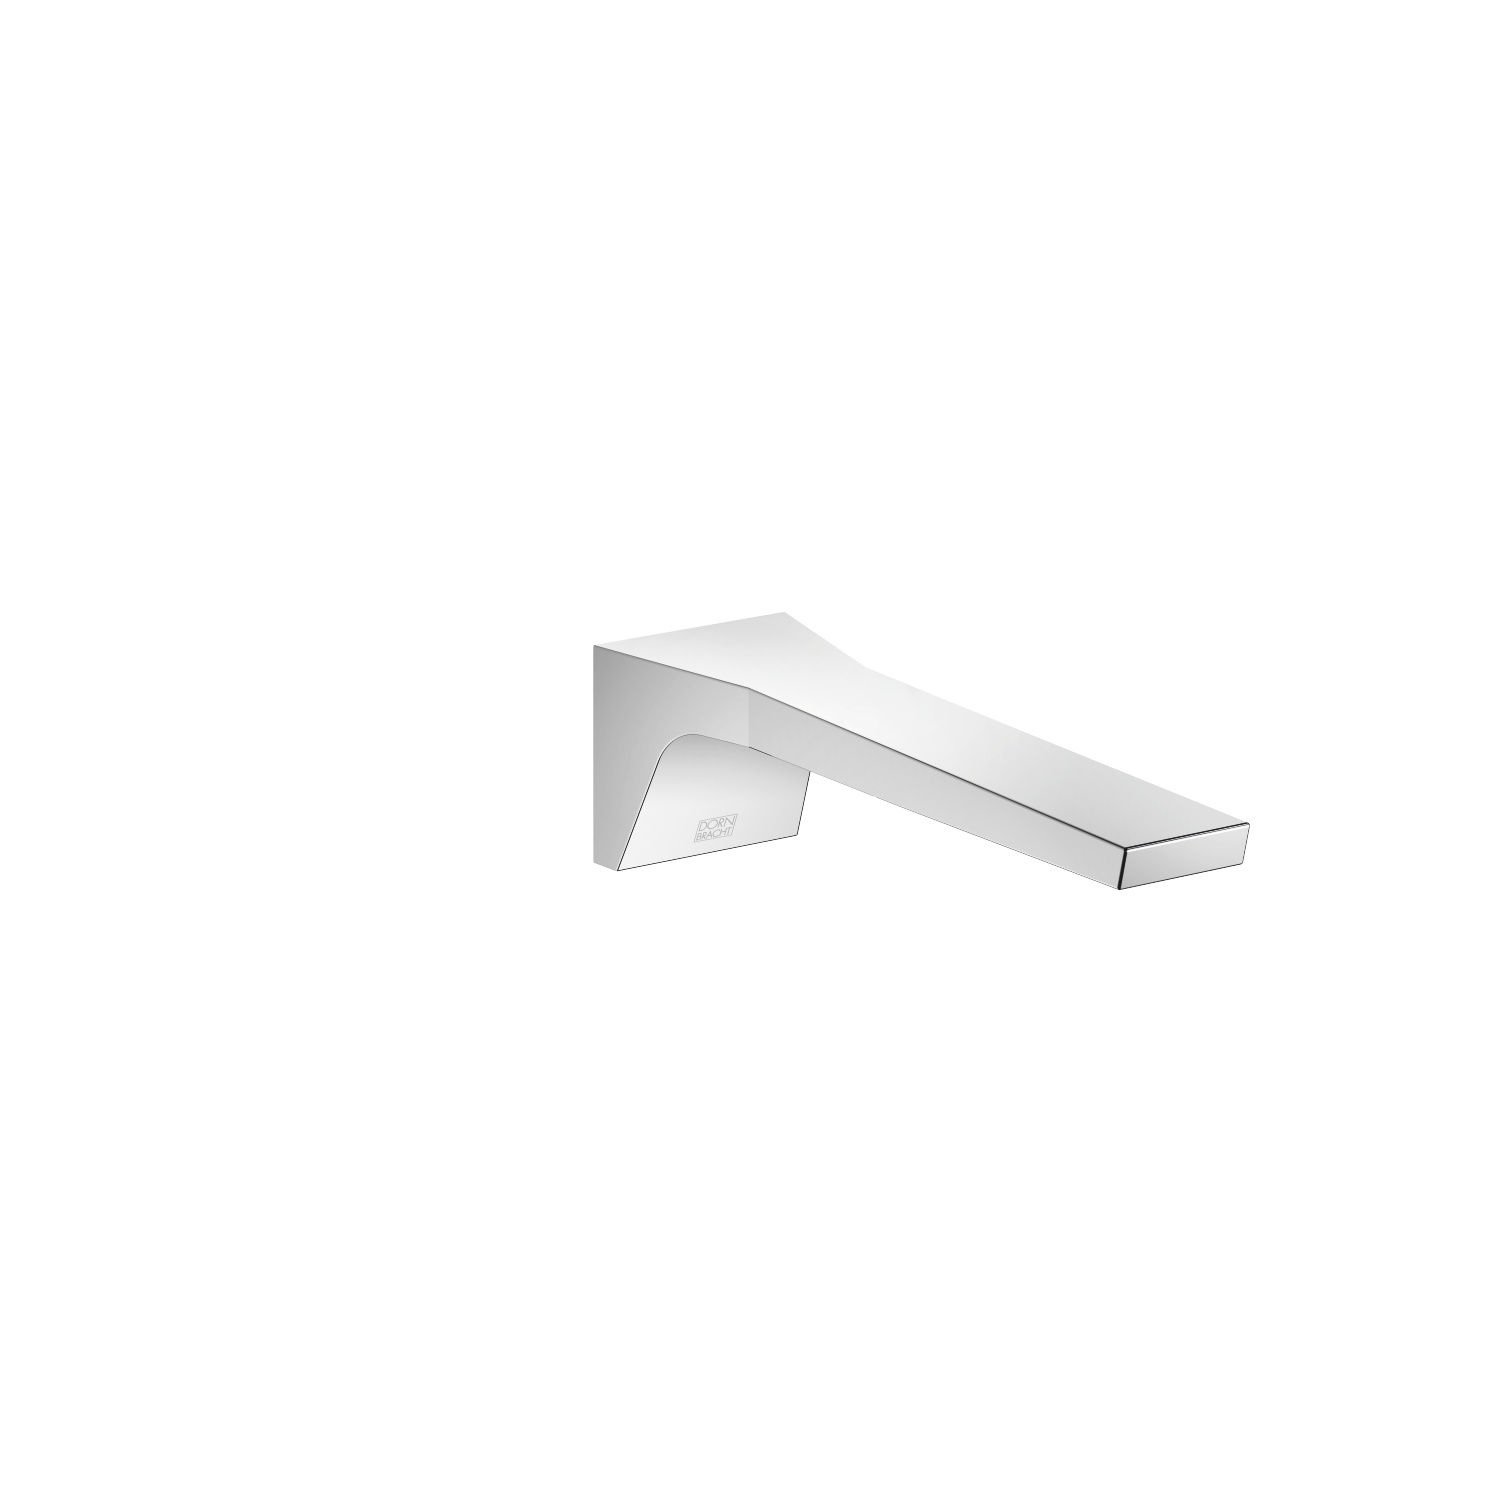 Wall-mounted basin spout without pop-up waste - polished chrome - 13 800 705-00